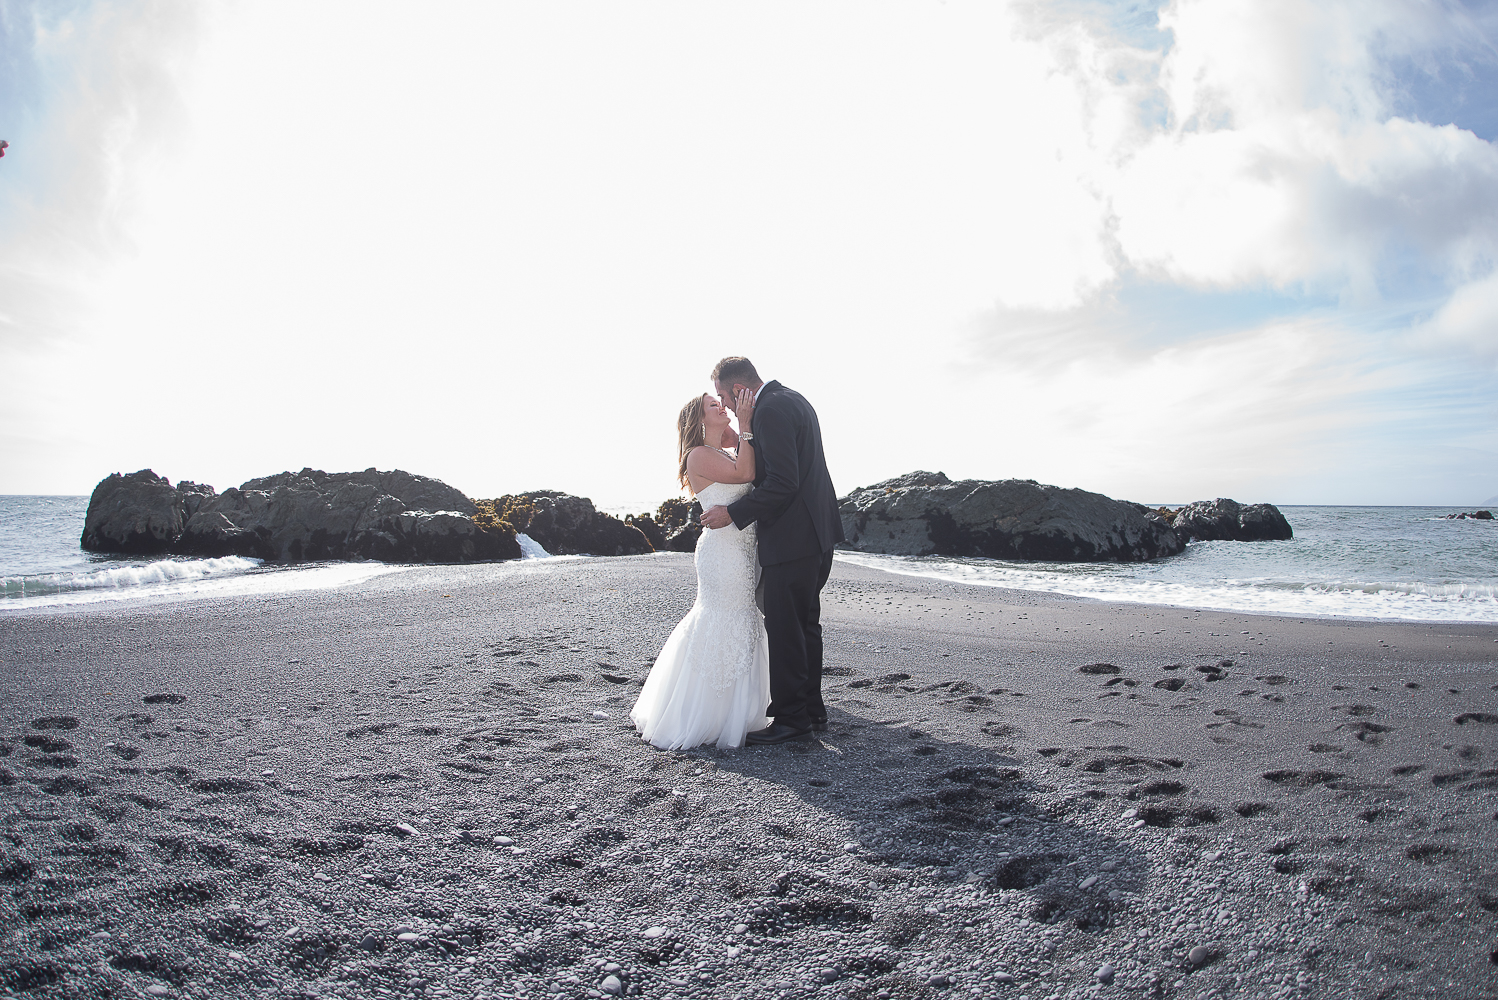 Shelter Cove-Intimate Destination beach Wedding-Parky's Pics Photography-Humboldt County_-16.jpg